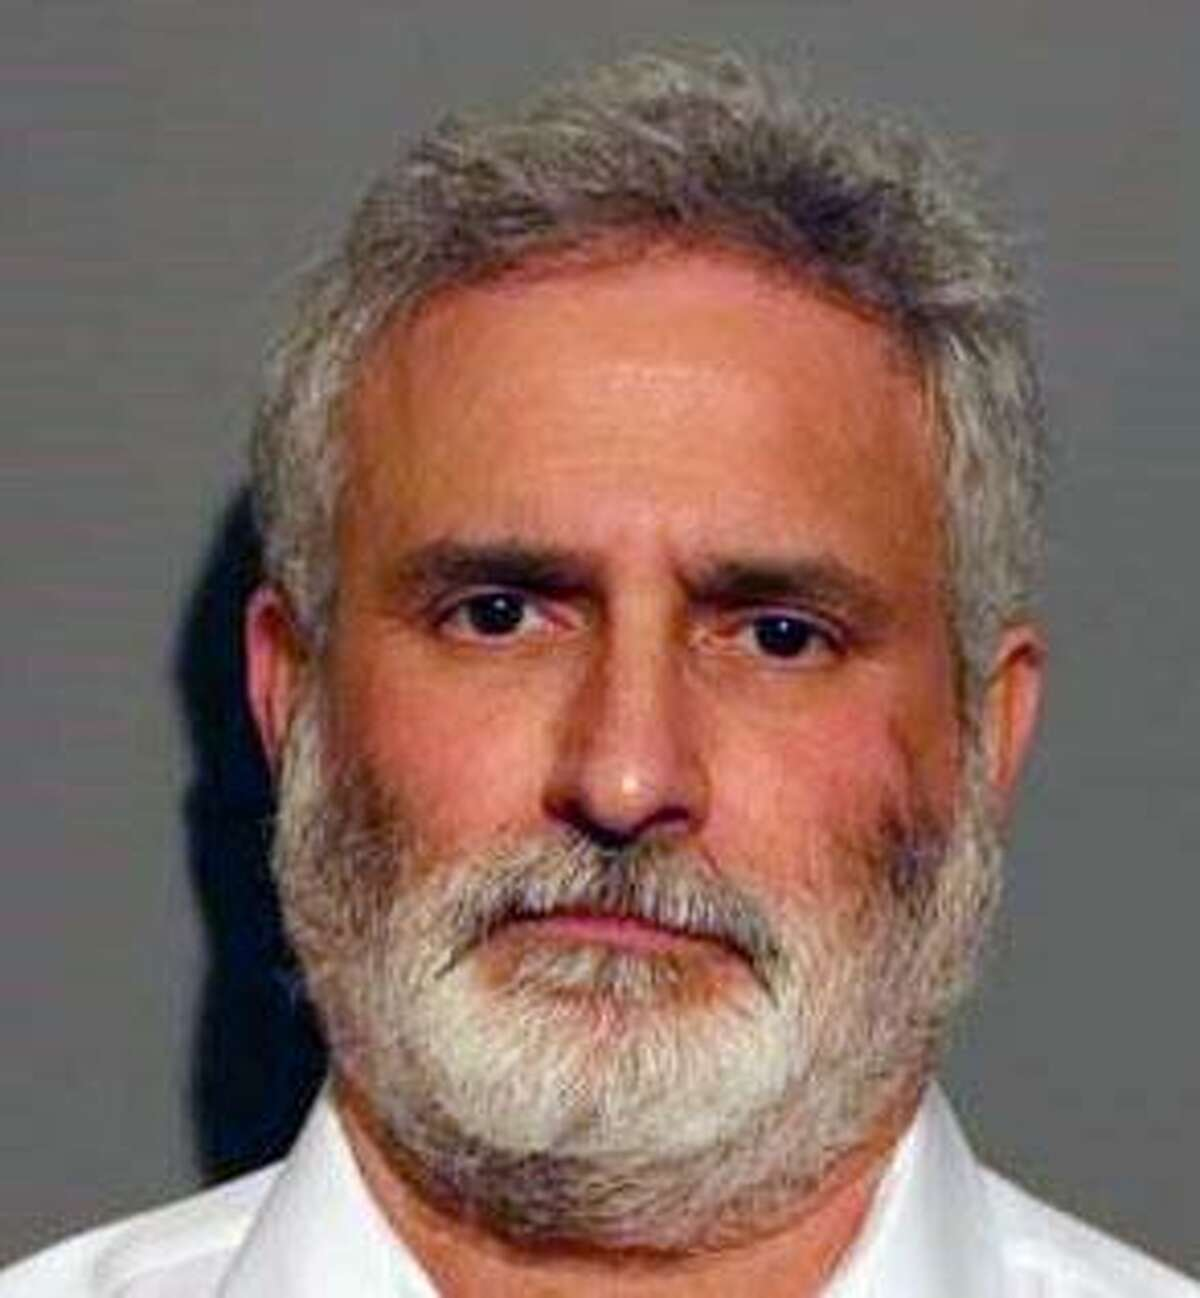 Bruce Gluck, Former Director of Food Services for the New Canaan School District, has been charged with taking nearly one-half million dollars over a five-year period. Photo: Bruce Gluck / New Canaan Police Department / Contributed photo